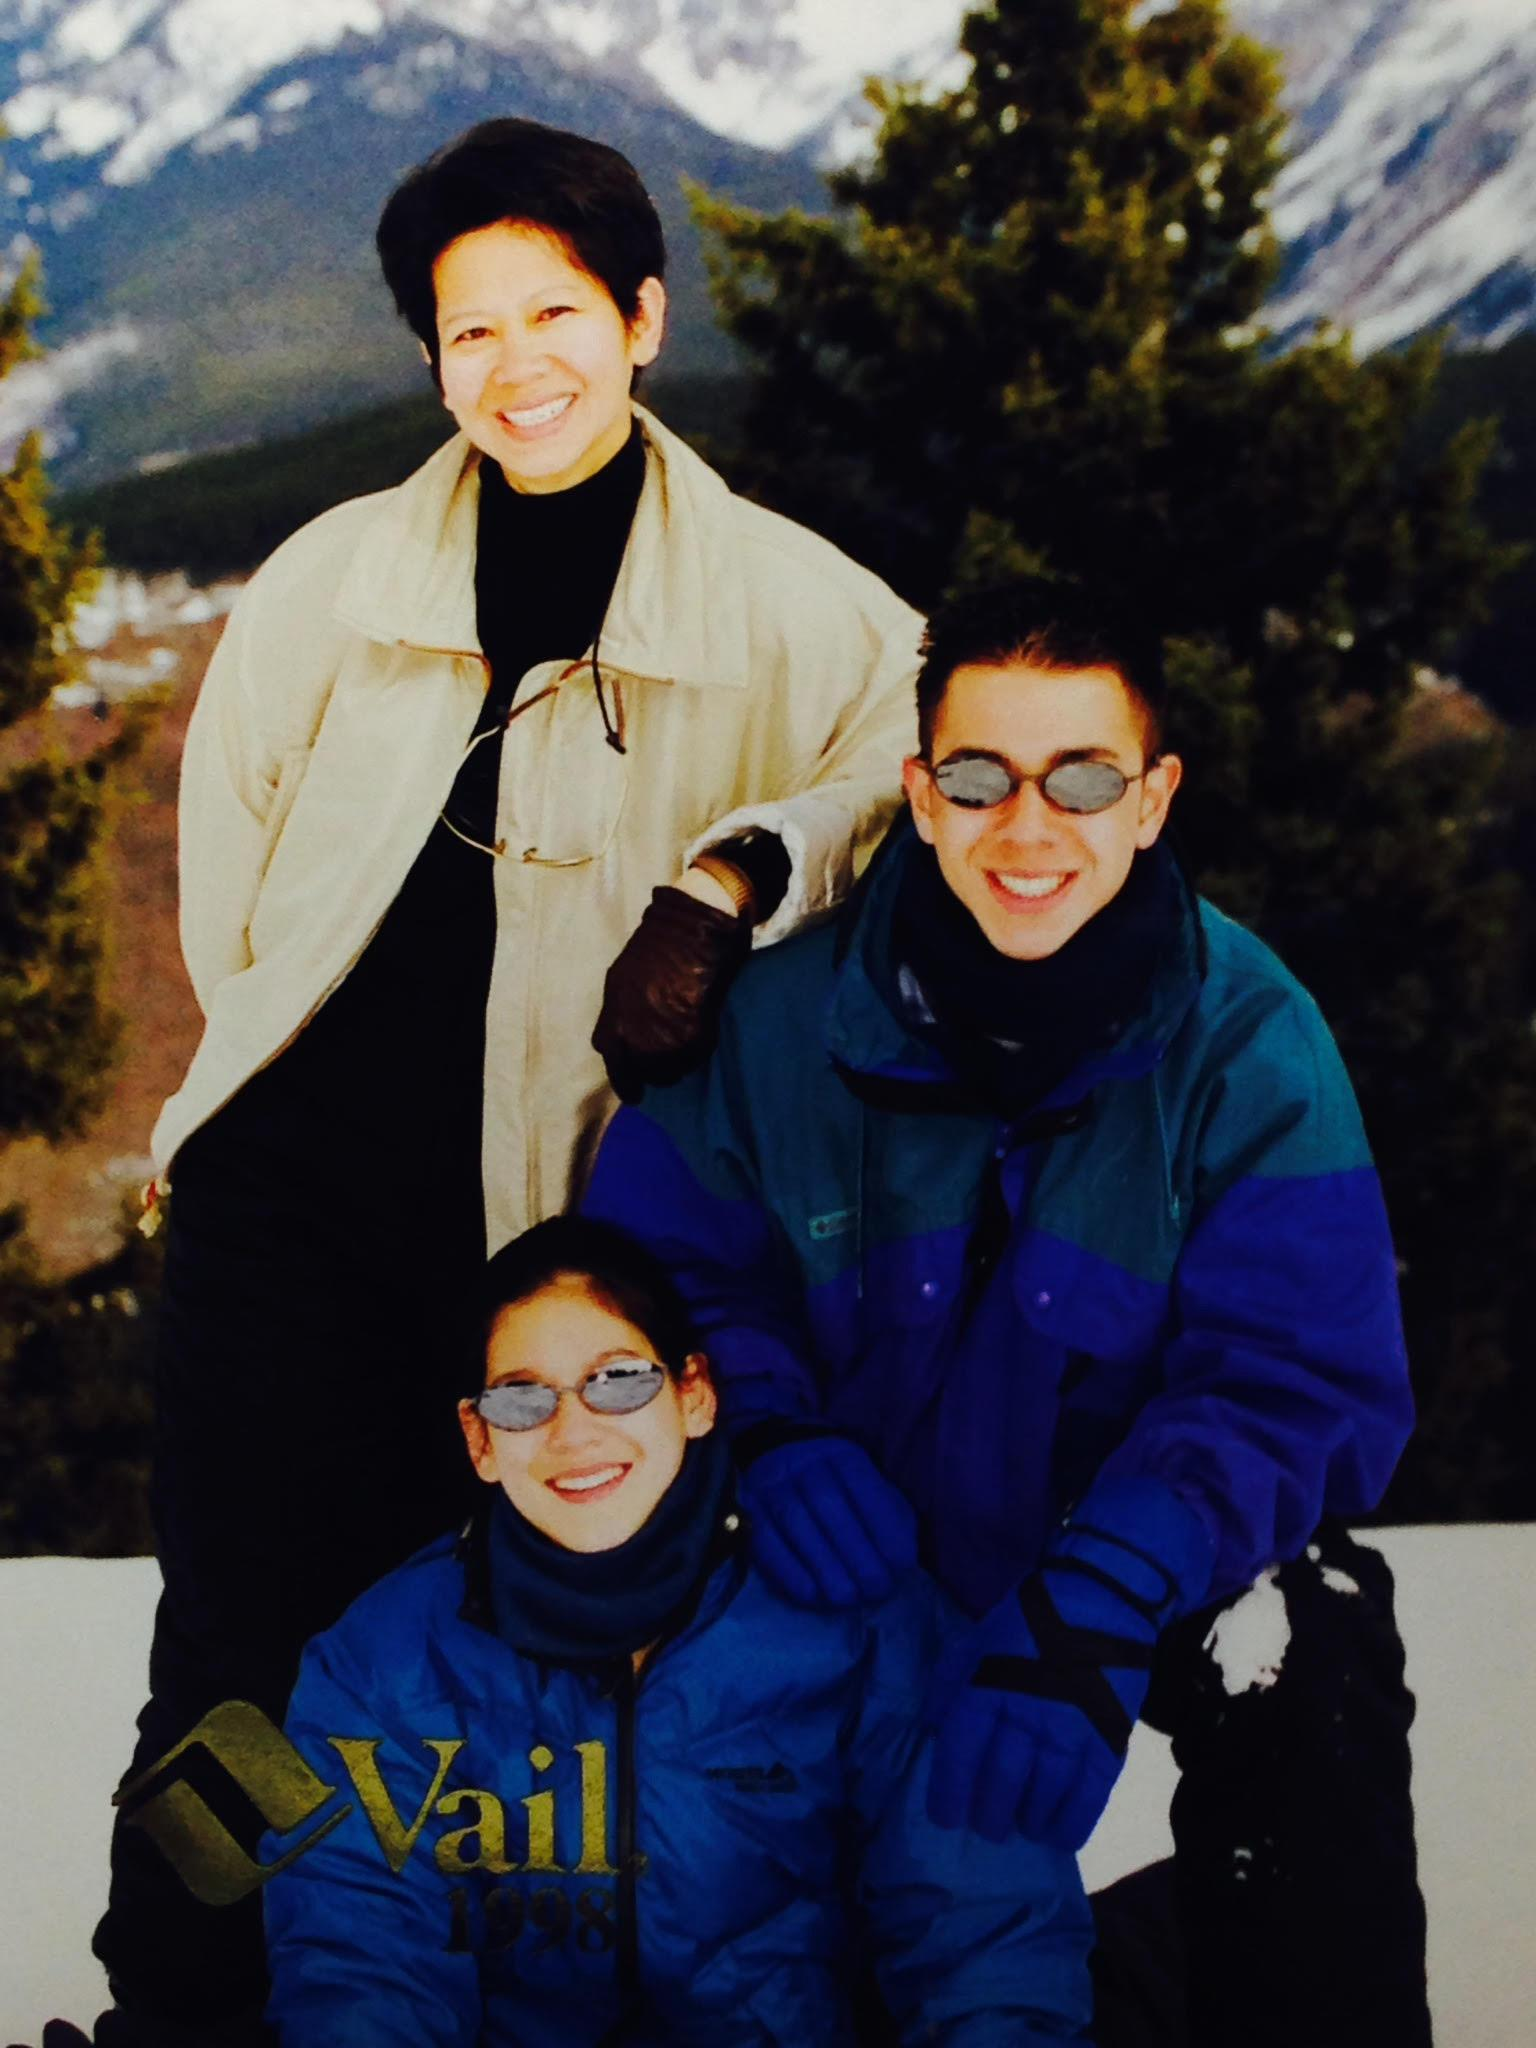 Thaivi, Mikhail and Nathalie go on a winter break ski trip in Vail, Co., 1998.